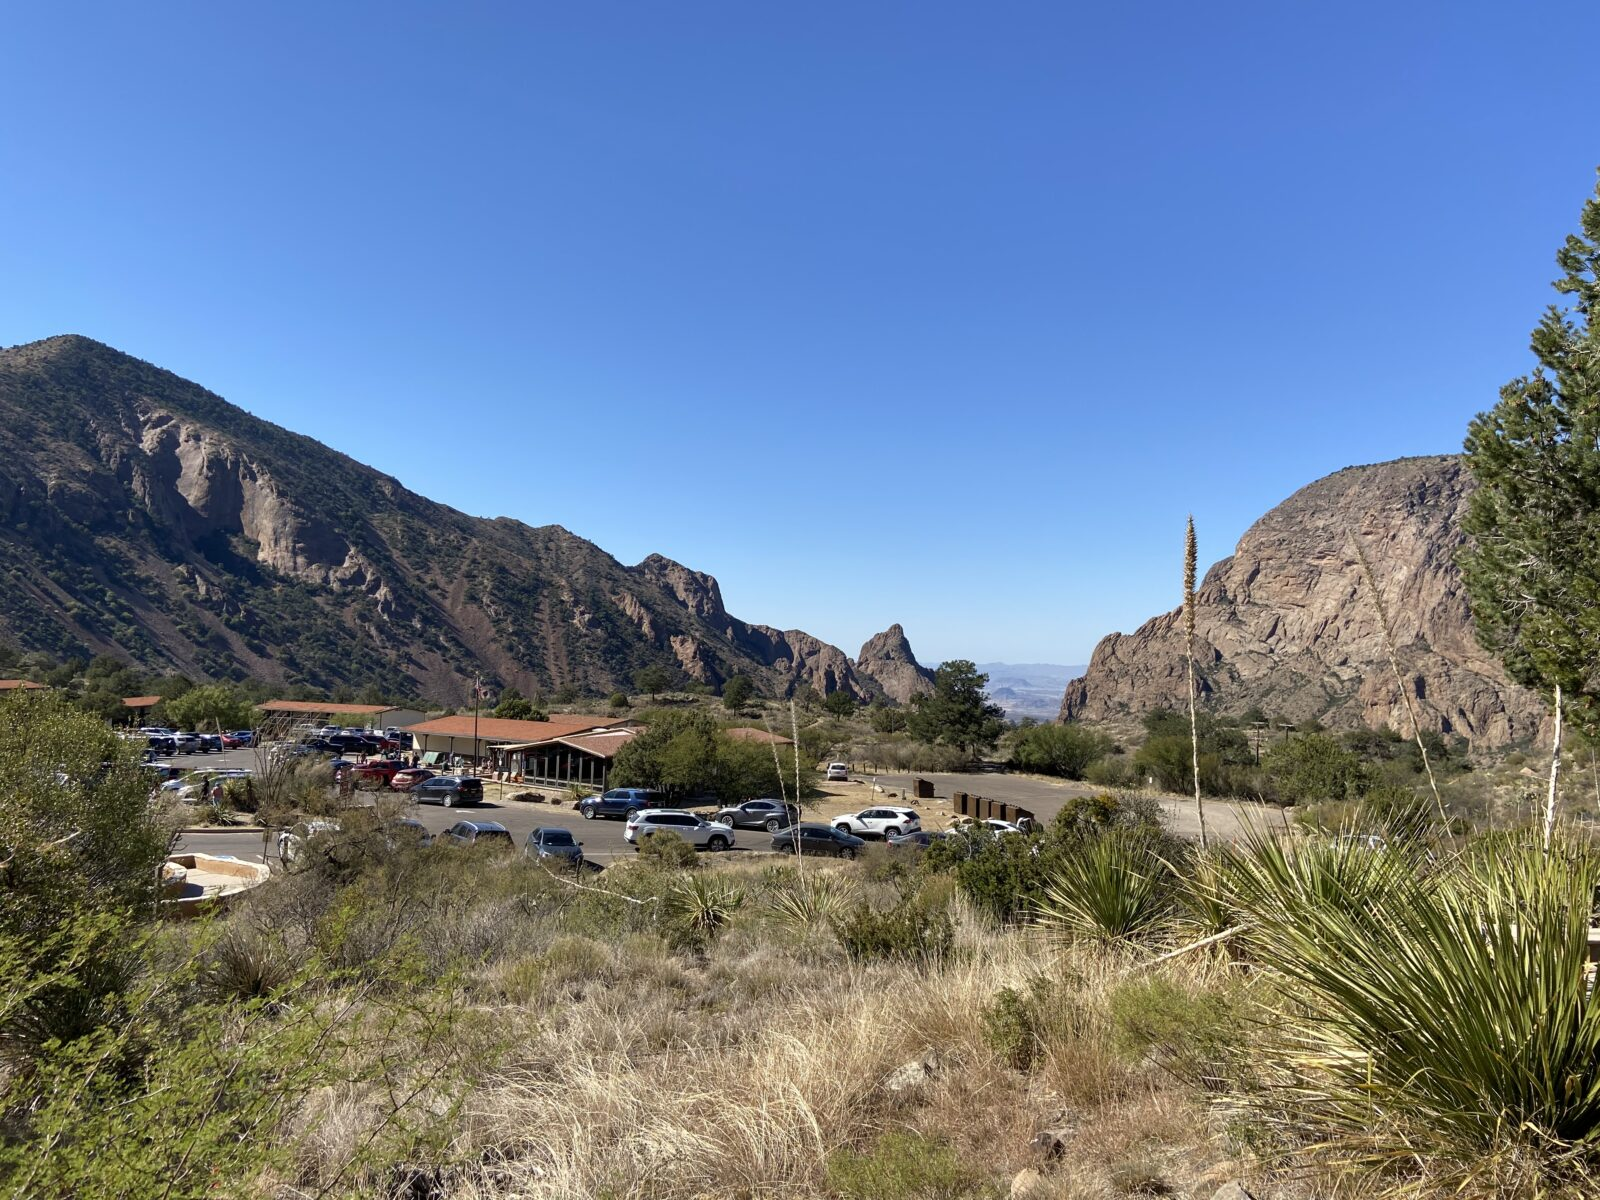 The Chisos Mountain Lodge at Big Bend National Park.